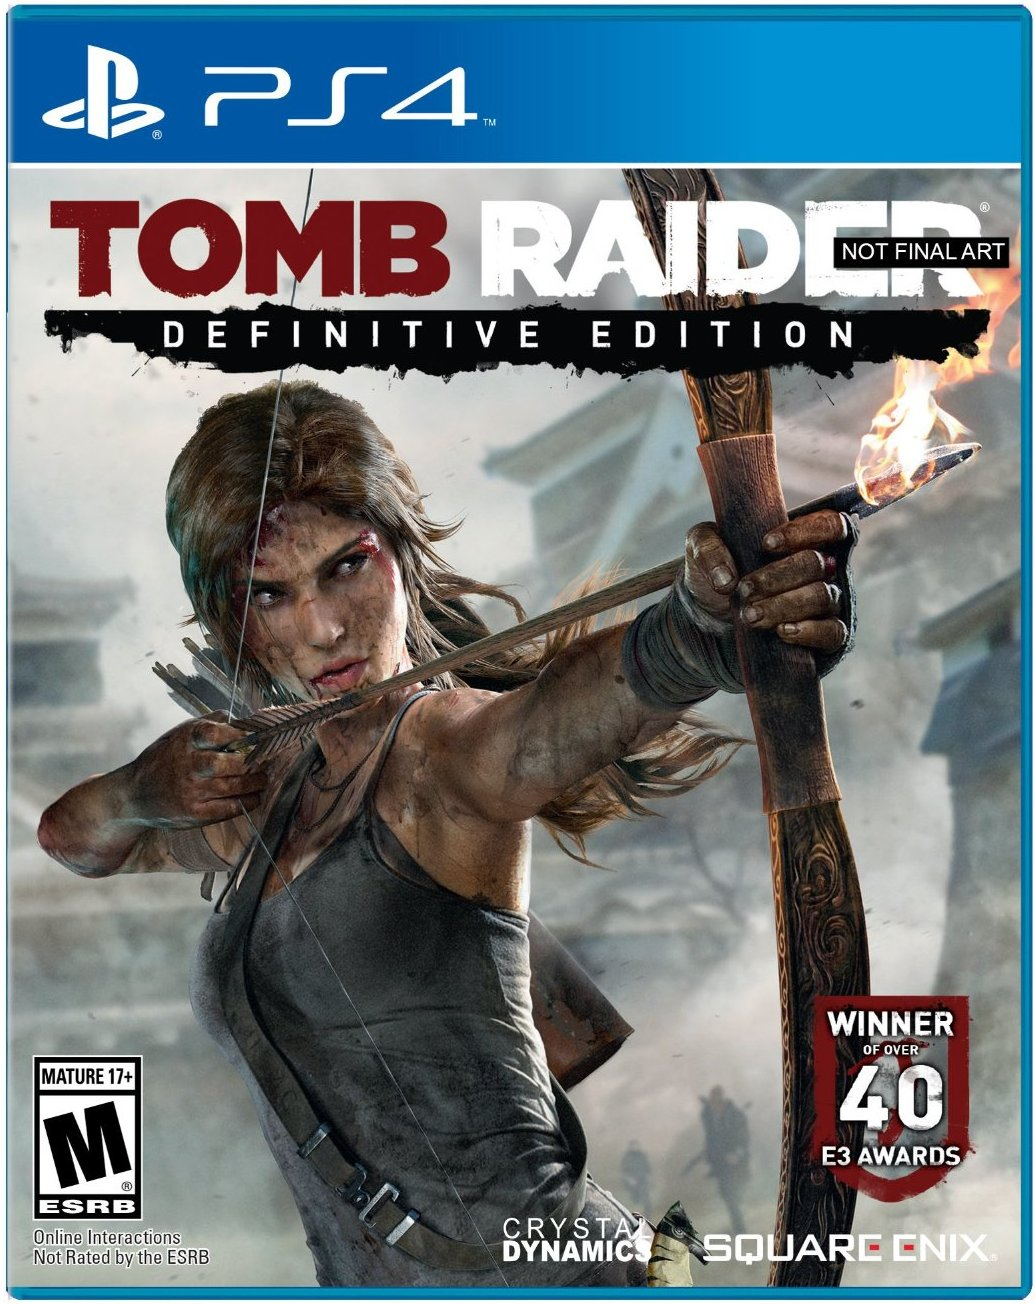 Box art - Tomb Raider: Definitive Edition